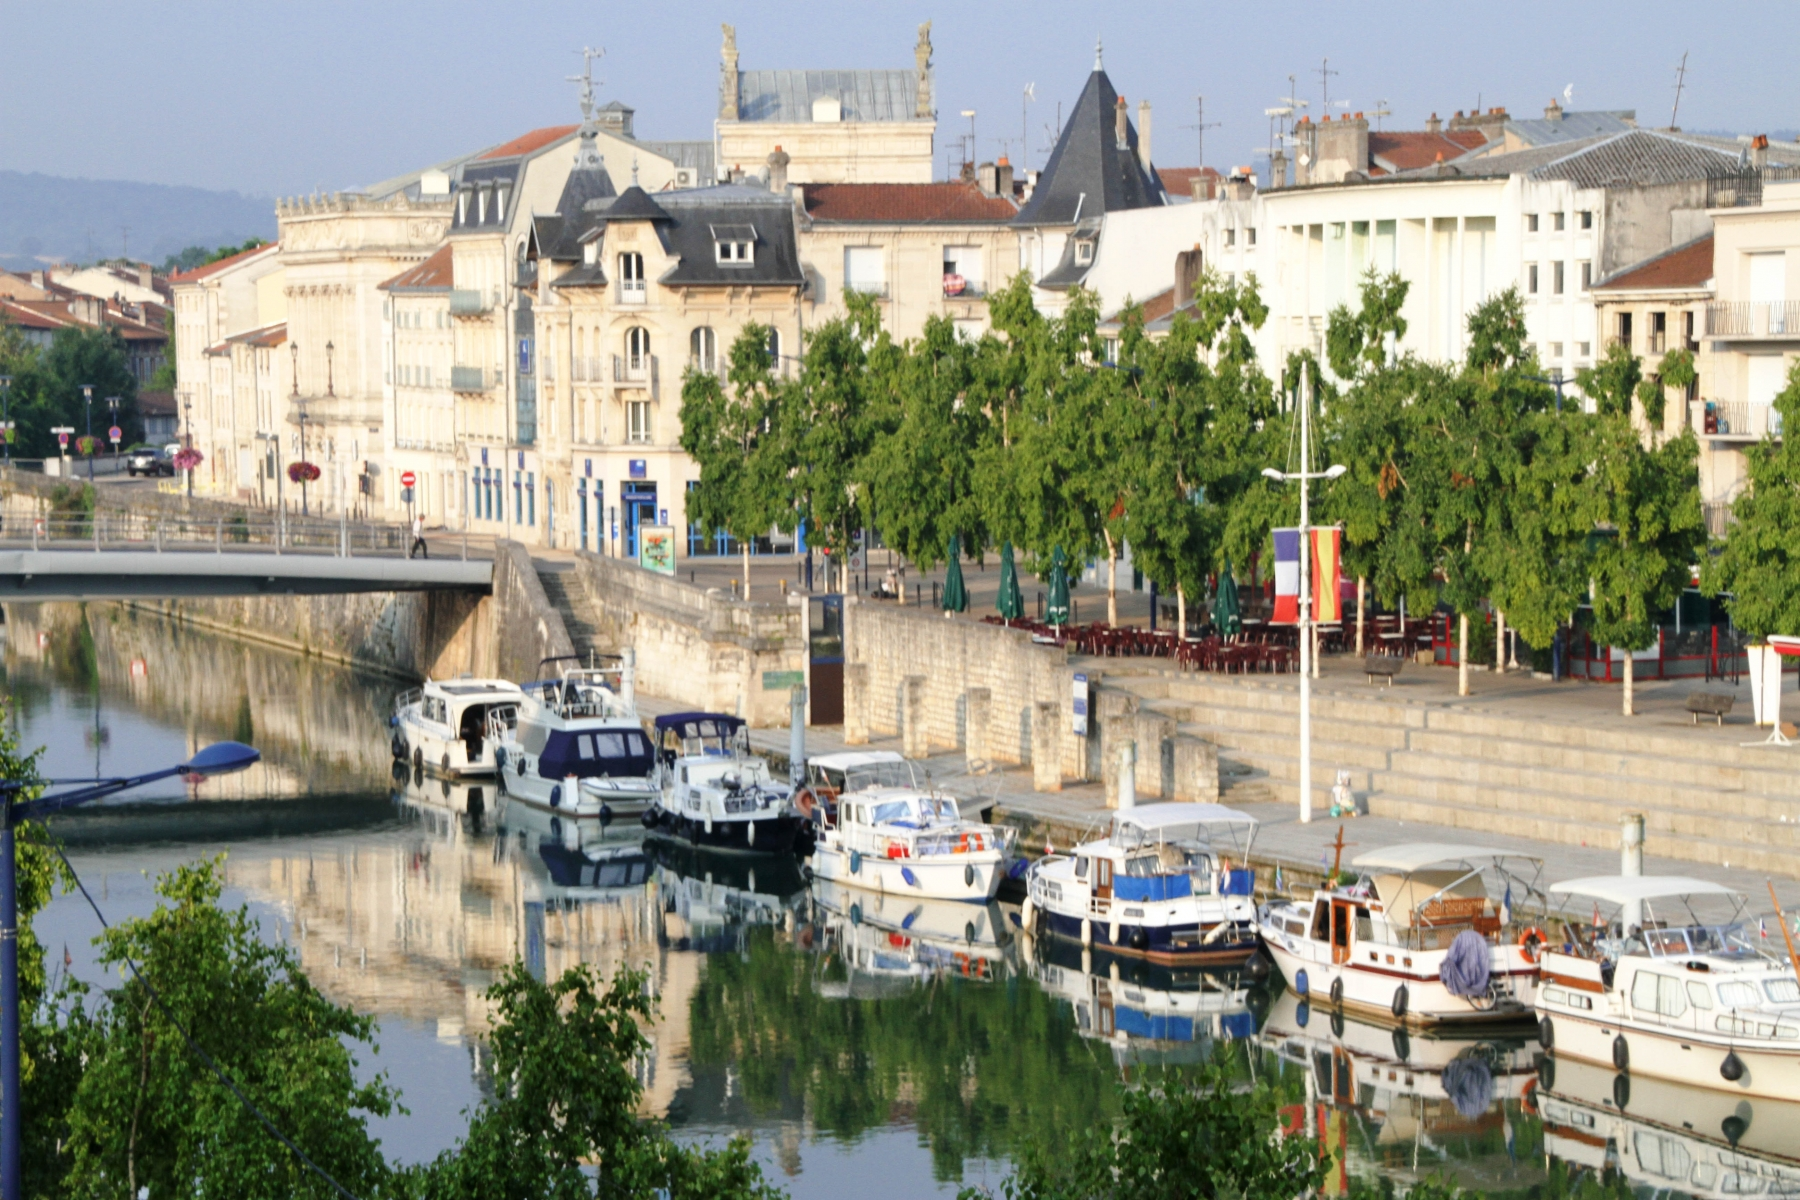 Verdun: Early morning view of the city center of Verdun, along the Meuse River in France's Lorraine region.